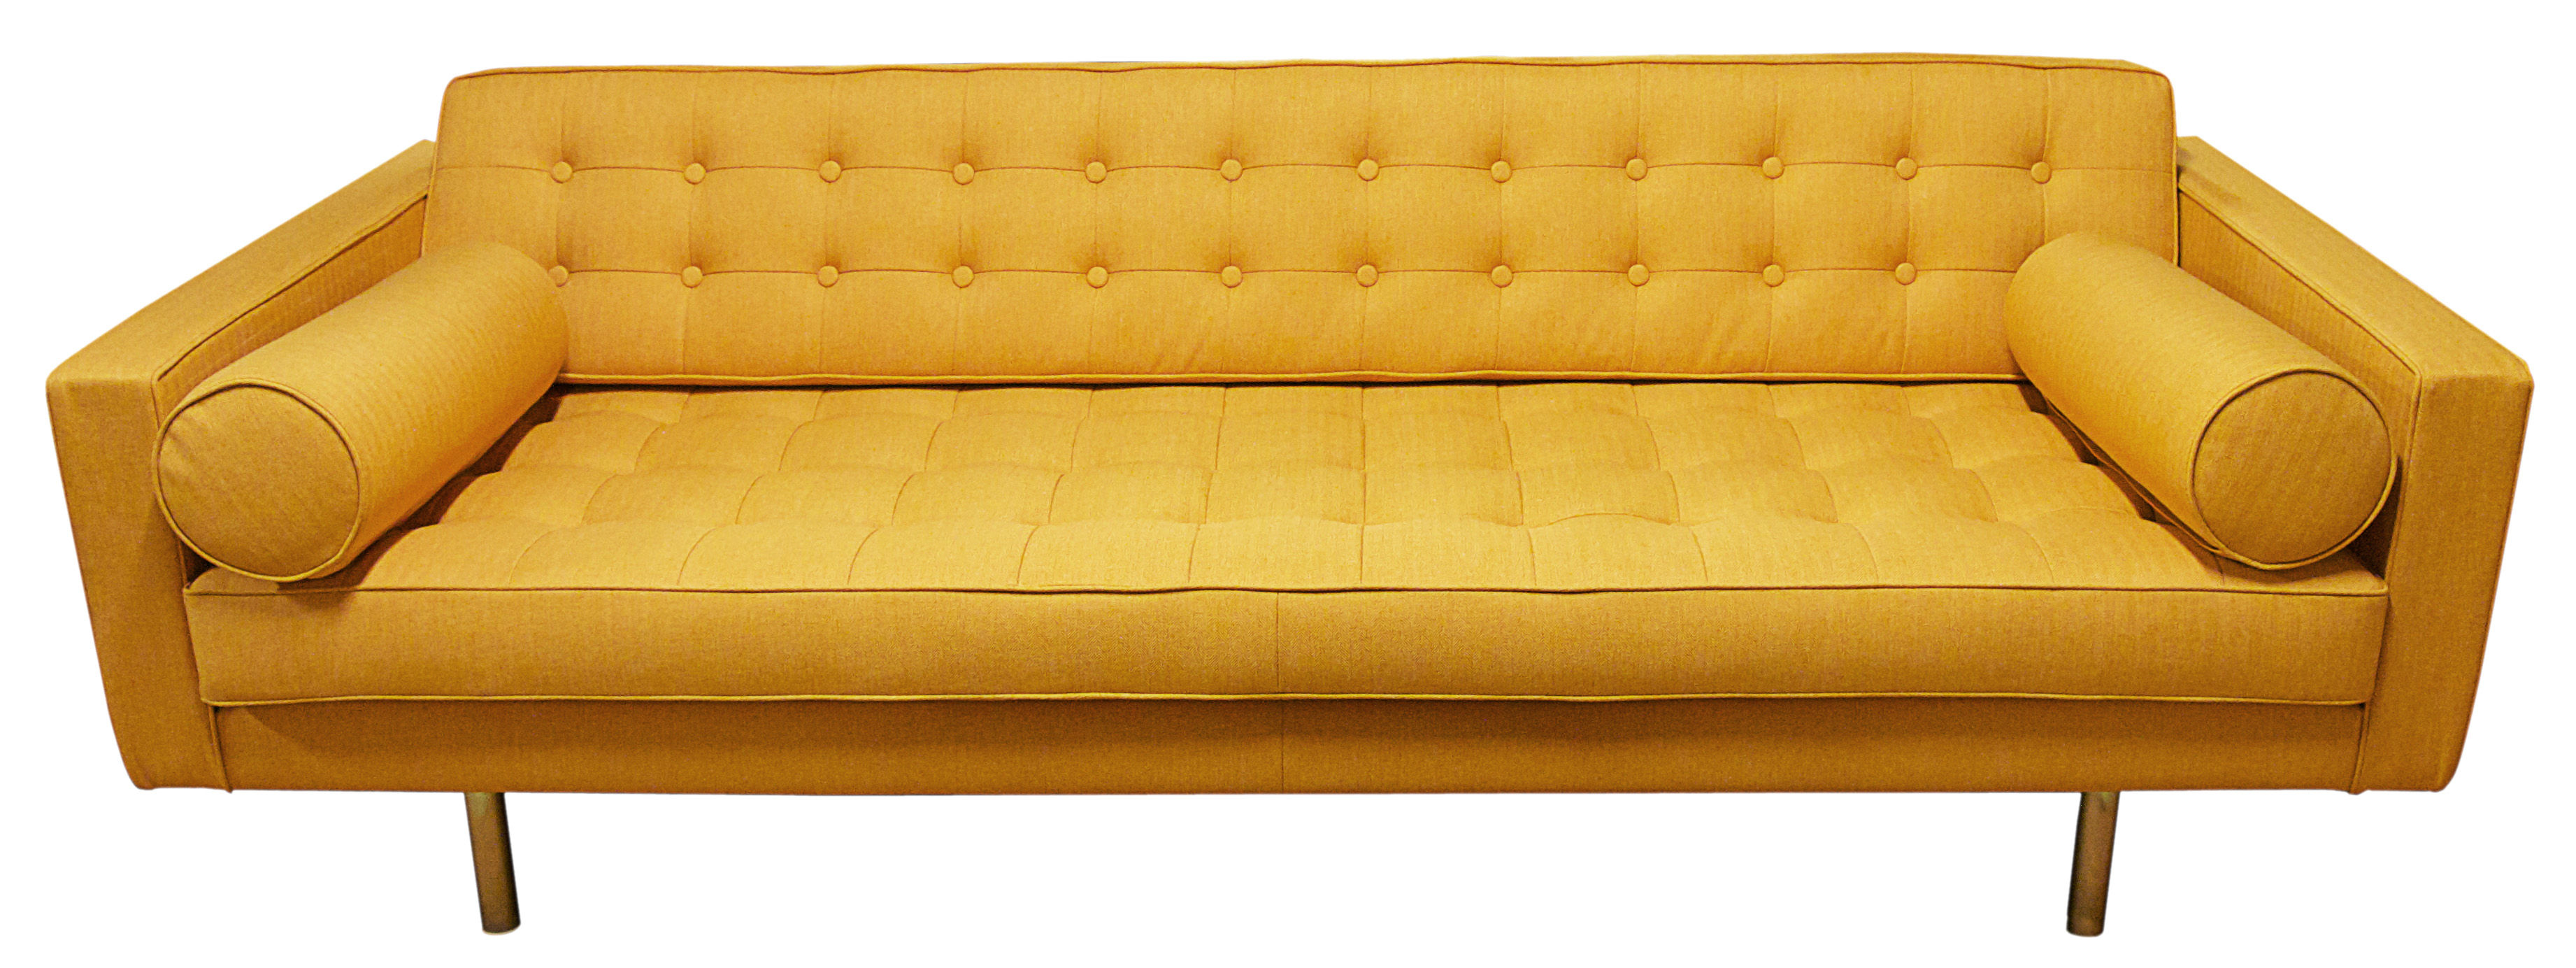 Canap droit 3 places l 215 cm jaune or made in design editions - Canape made in design ...